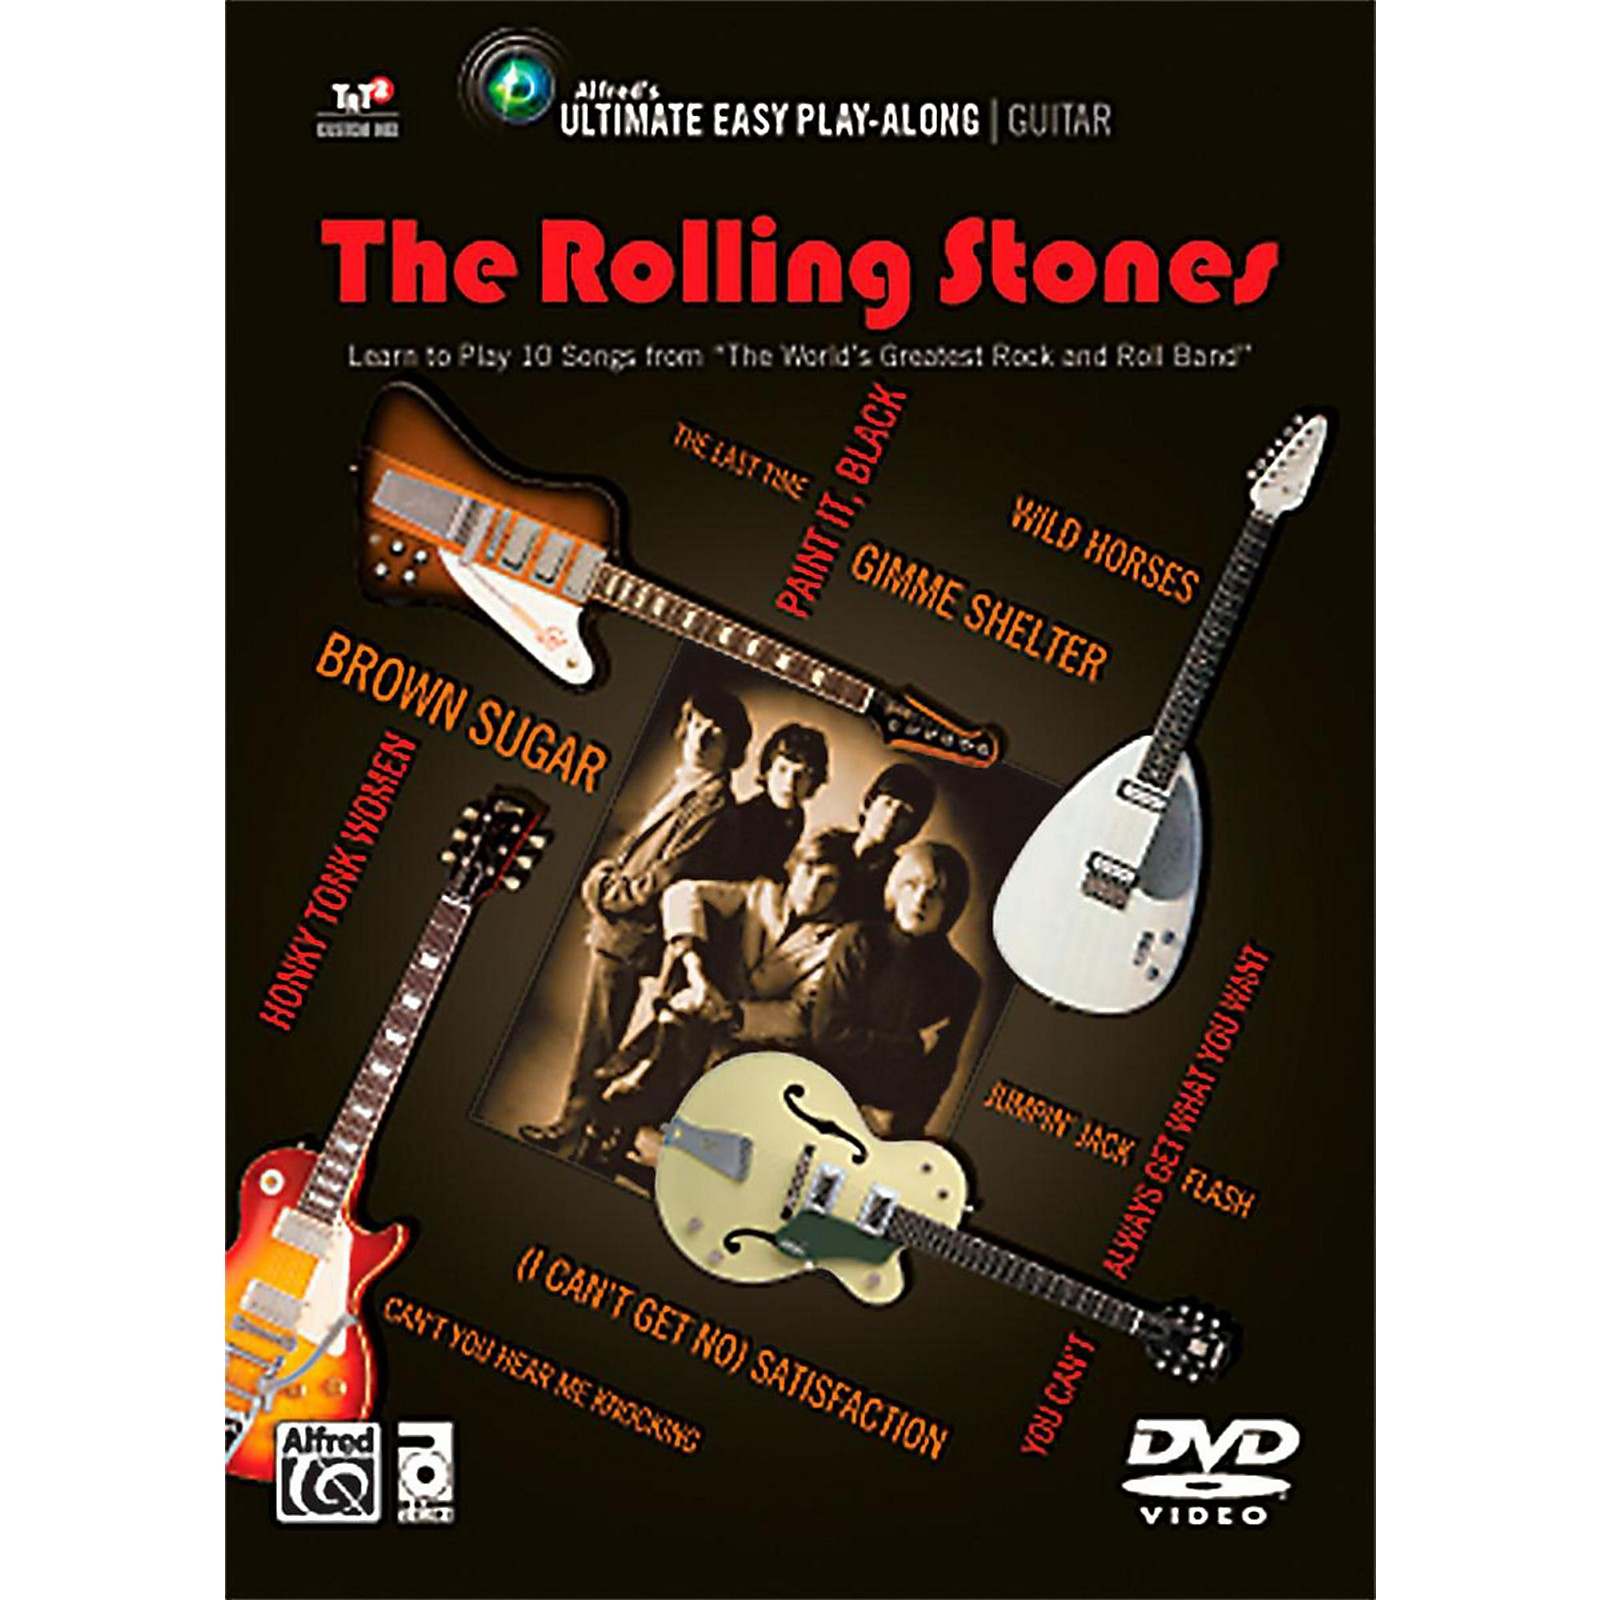 Alfred The Rolling Stones - Ultimate Easy Guitar Play-Along DVD